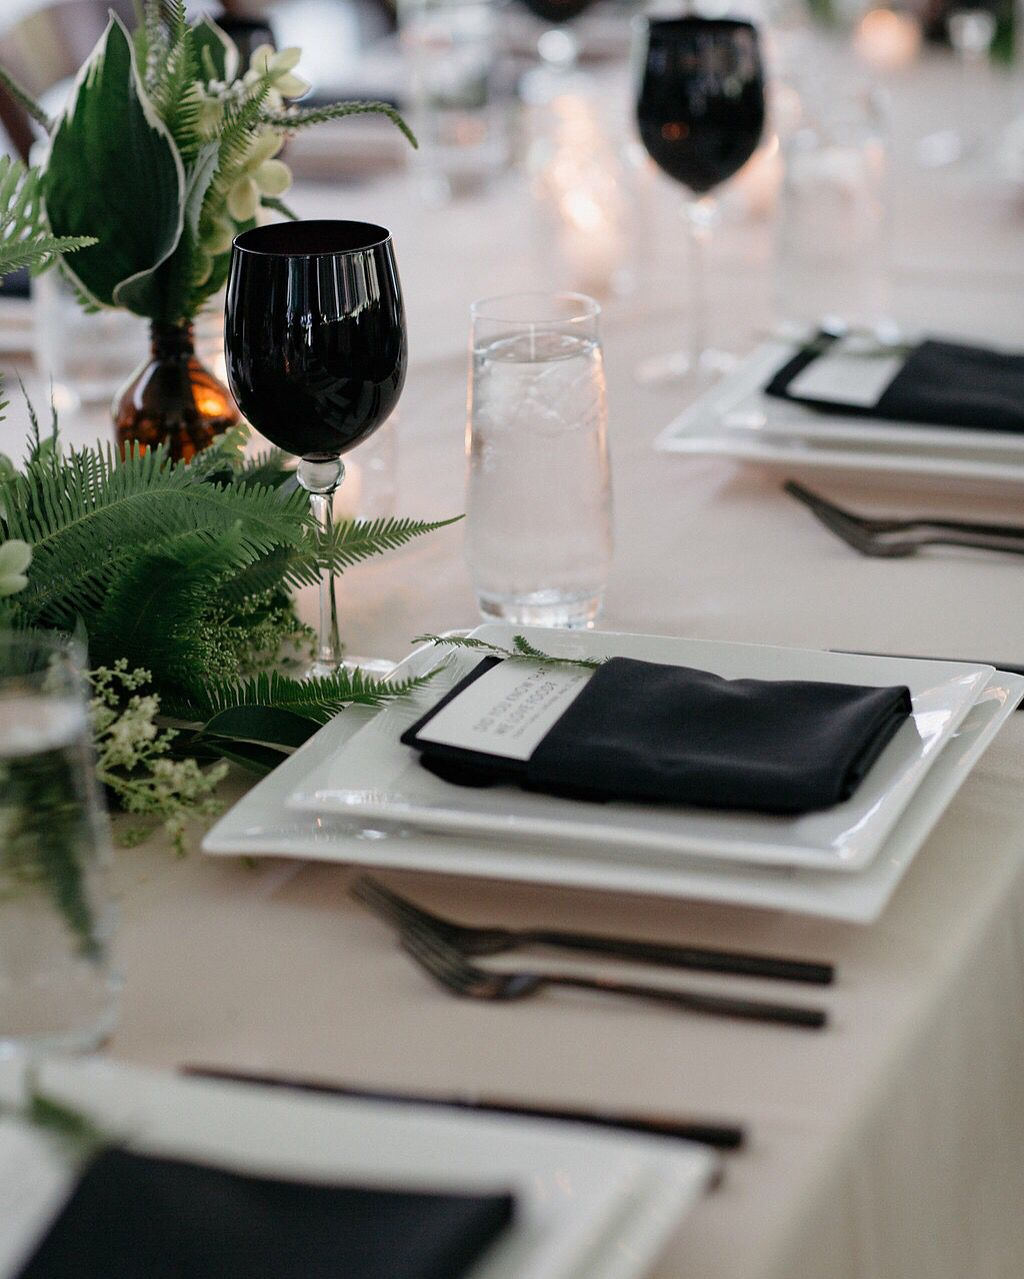 Very cool tabletop styling from Flutter Events. We love the black and white place setting combination!  Event Planning & Design: @PilarMustafa of @FlutterEvents   Floral Design: @RevelFloral   Photography: @GretchenGause   Venue: @Kvenues  #encoreeventsrentals #whitesquarechina #blackwineglass #arezzomatteblackflatware #purecrystaltumbler #tabletop #tabletopdesign #placesetting #weddinginspiration #eventinspiration #eventplanning #eventdesign #blackandwhite #floraldesign #eventrentals